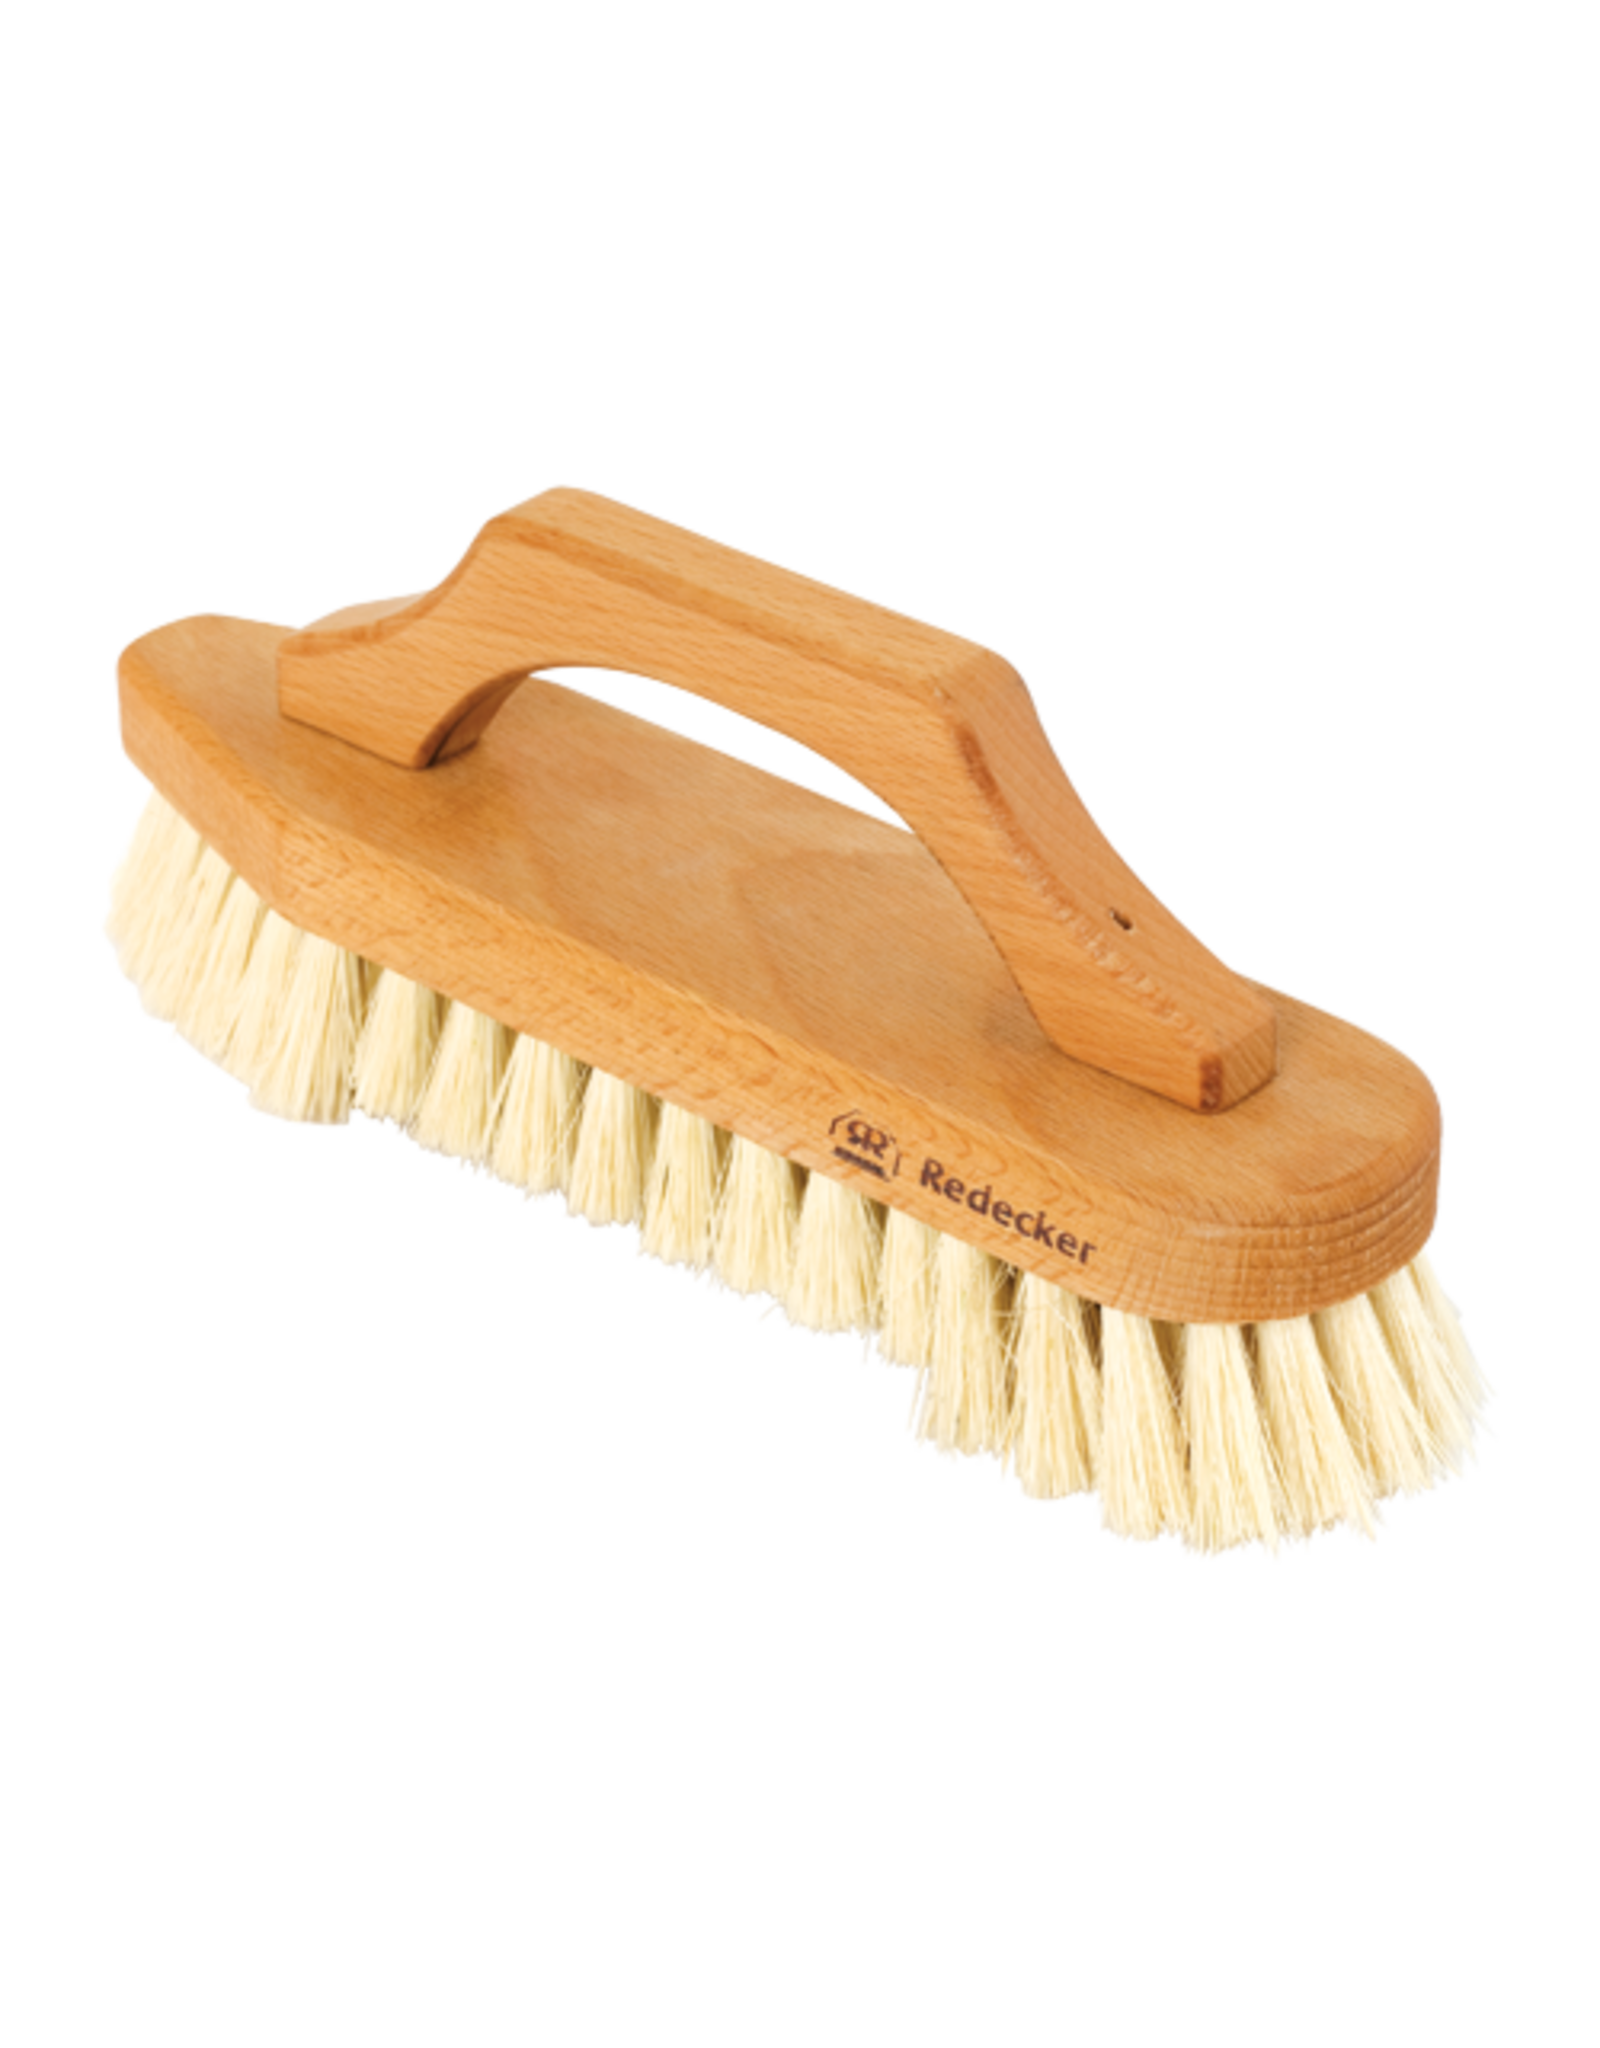 Redecker Scrub Brush With Bow-shaped Handle